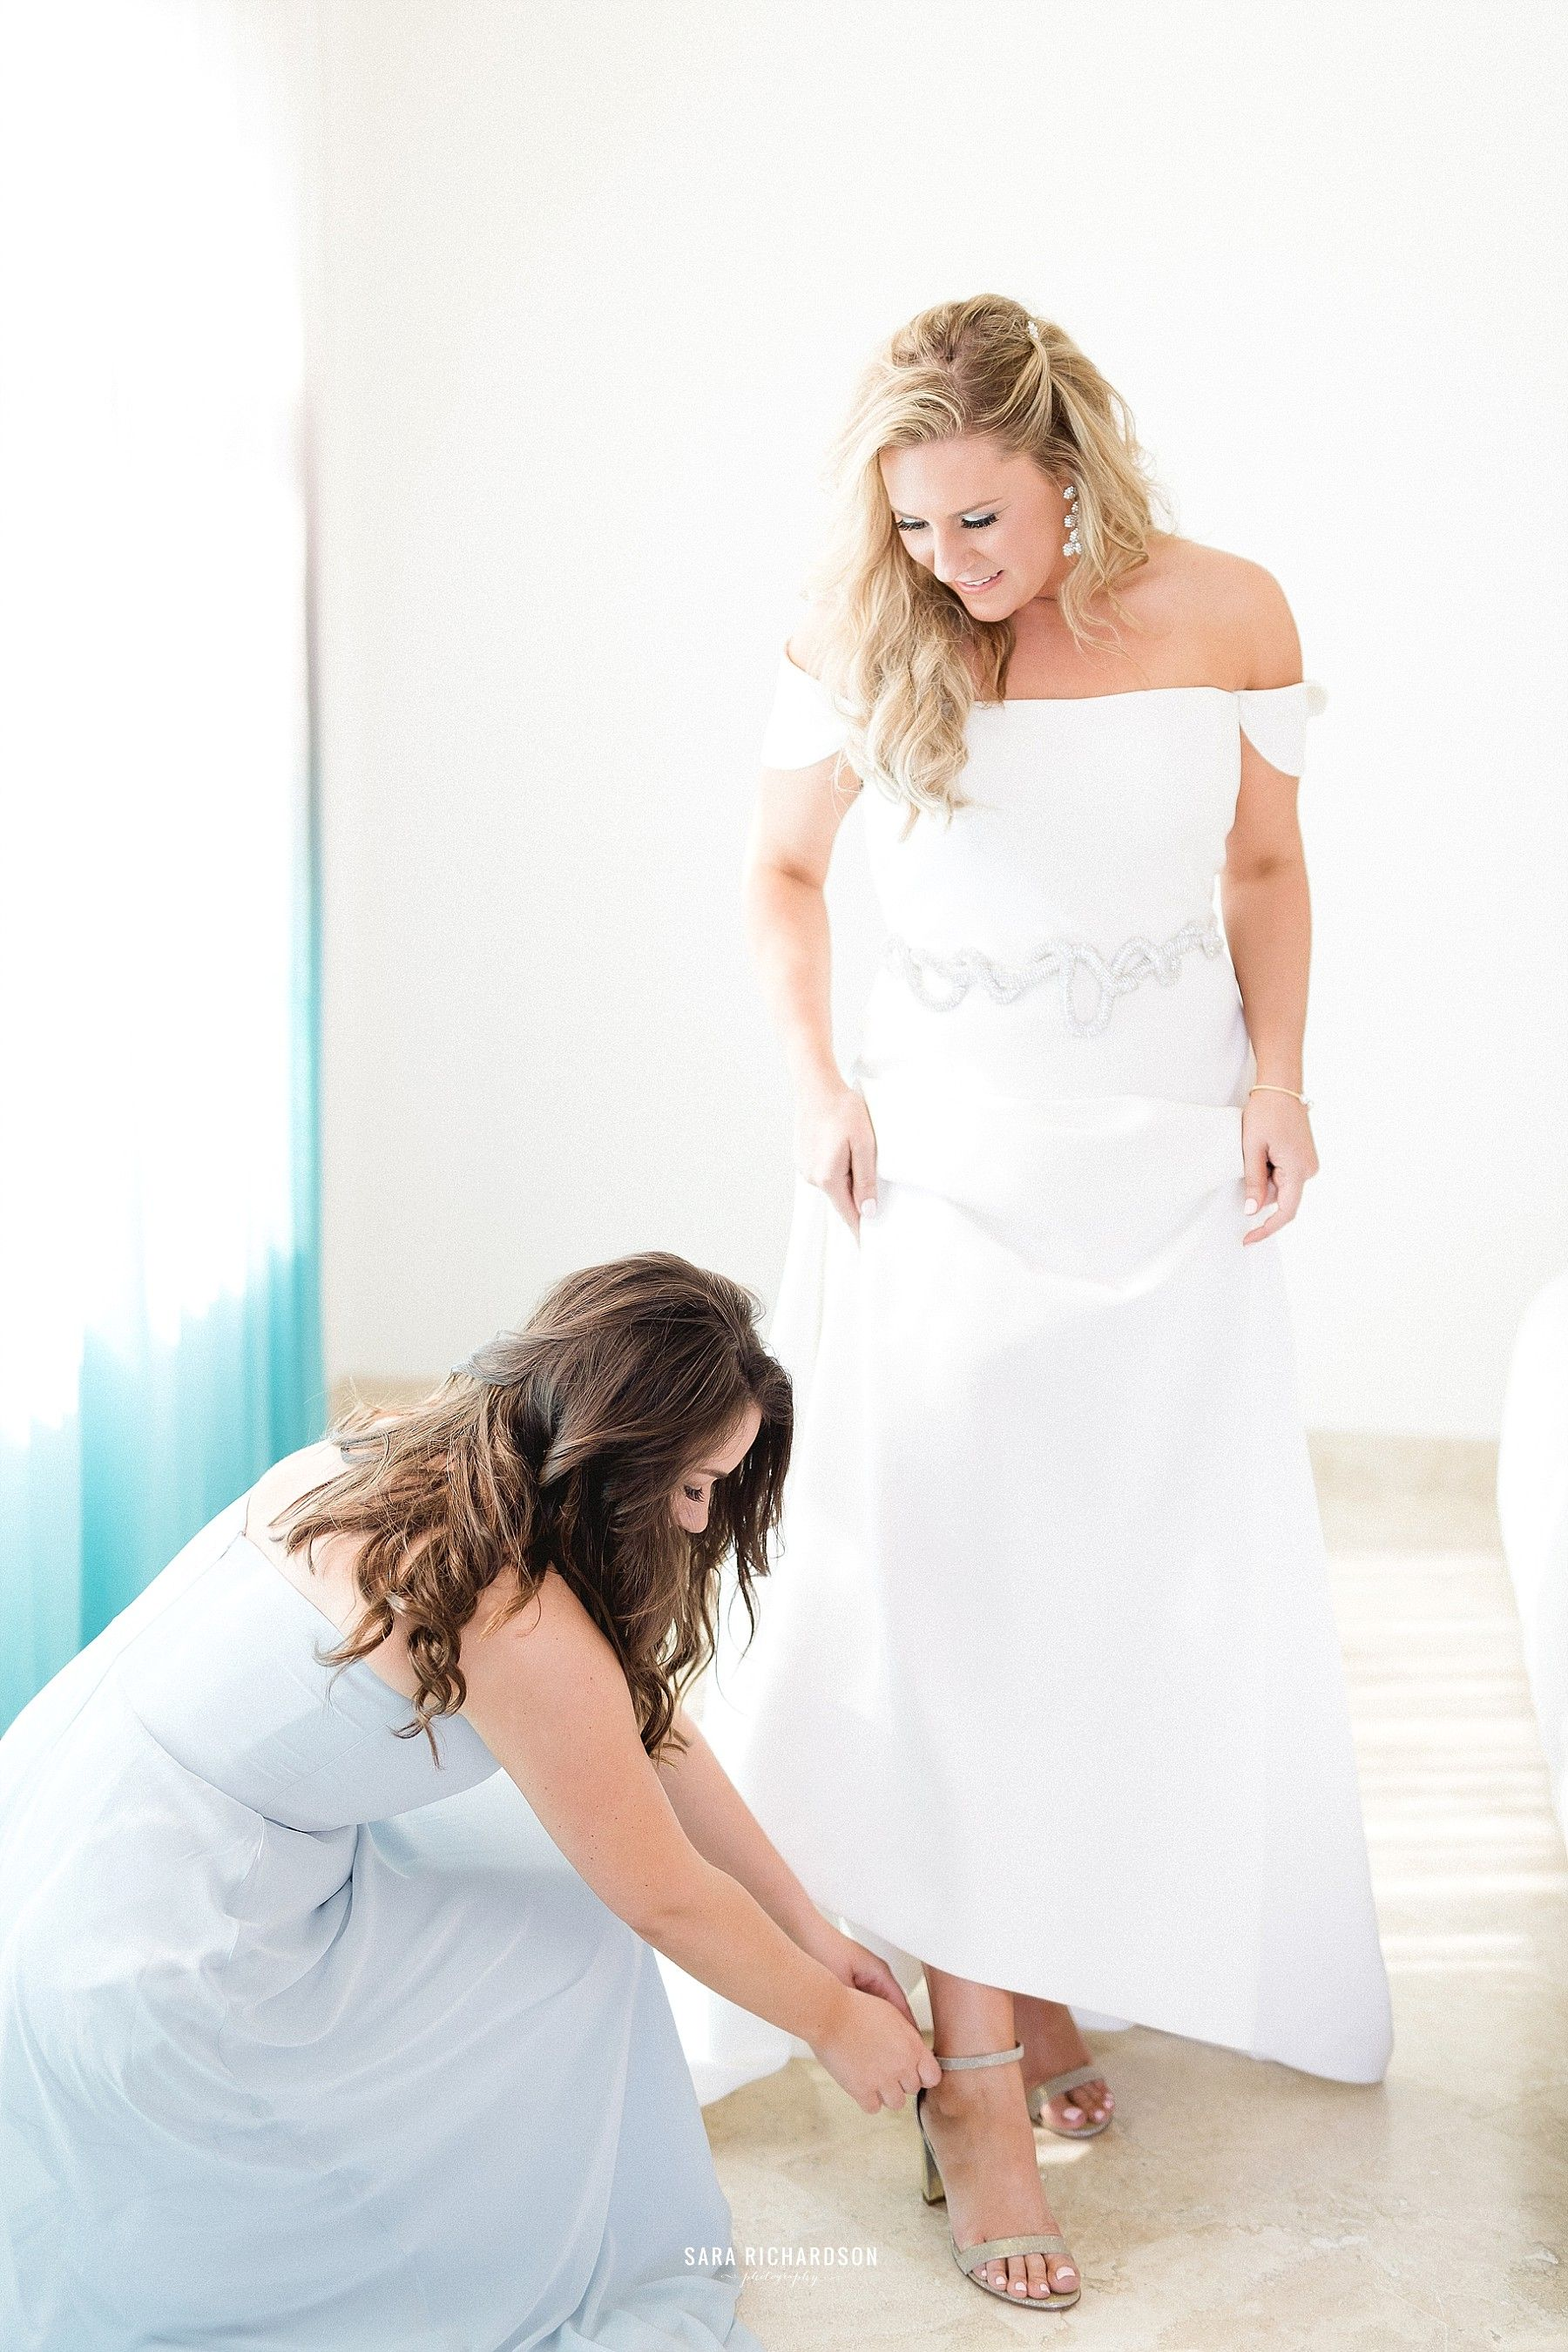 Brides sister helping her put her shoes on. The Bride, Lindsey, decided to go with Jimmy Choo shoes, which are always the perfect shoes to wear on your Wedding Day.